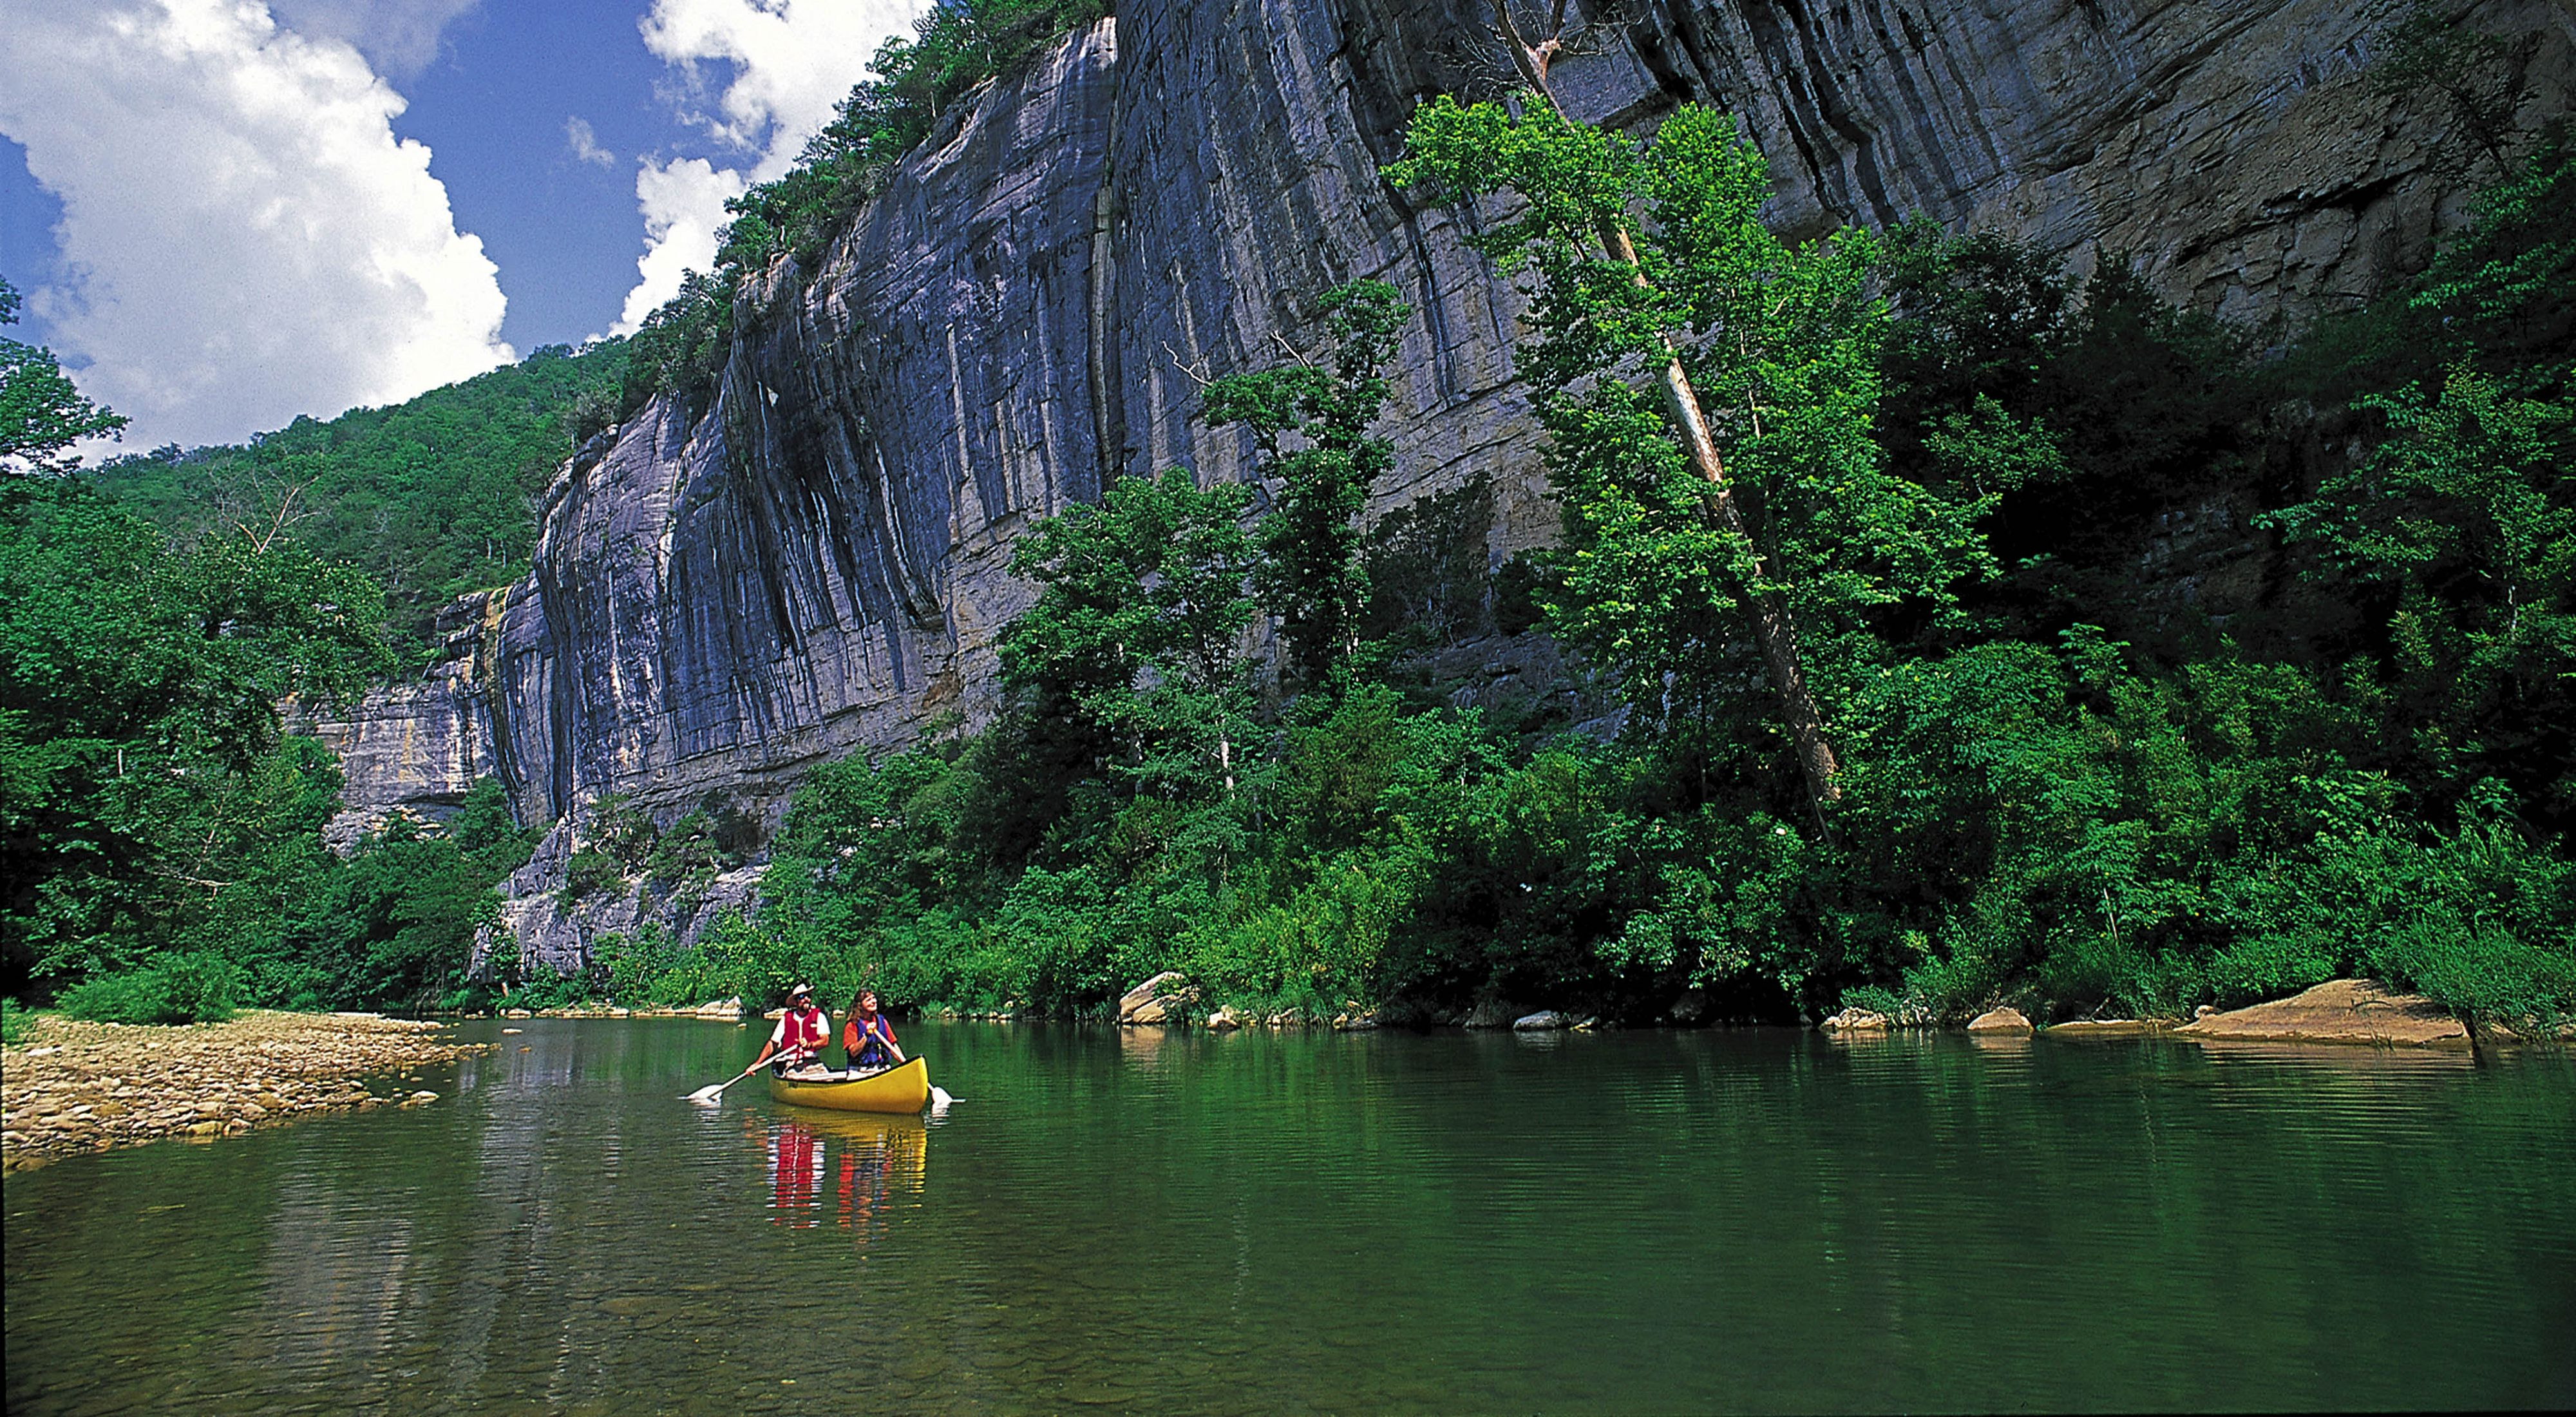 Two people canoeing on the Buffalo River with rocky cliffs along one bank.